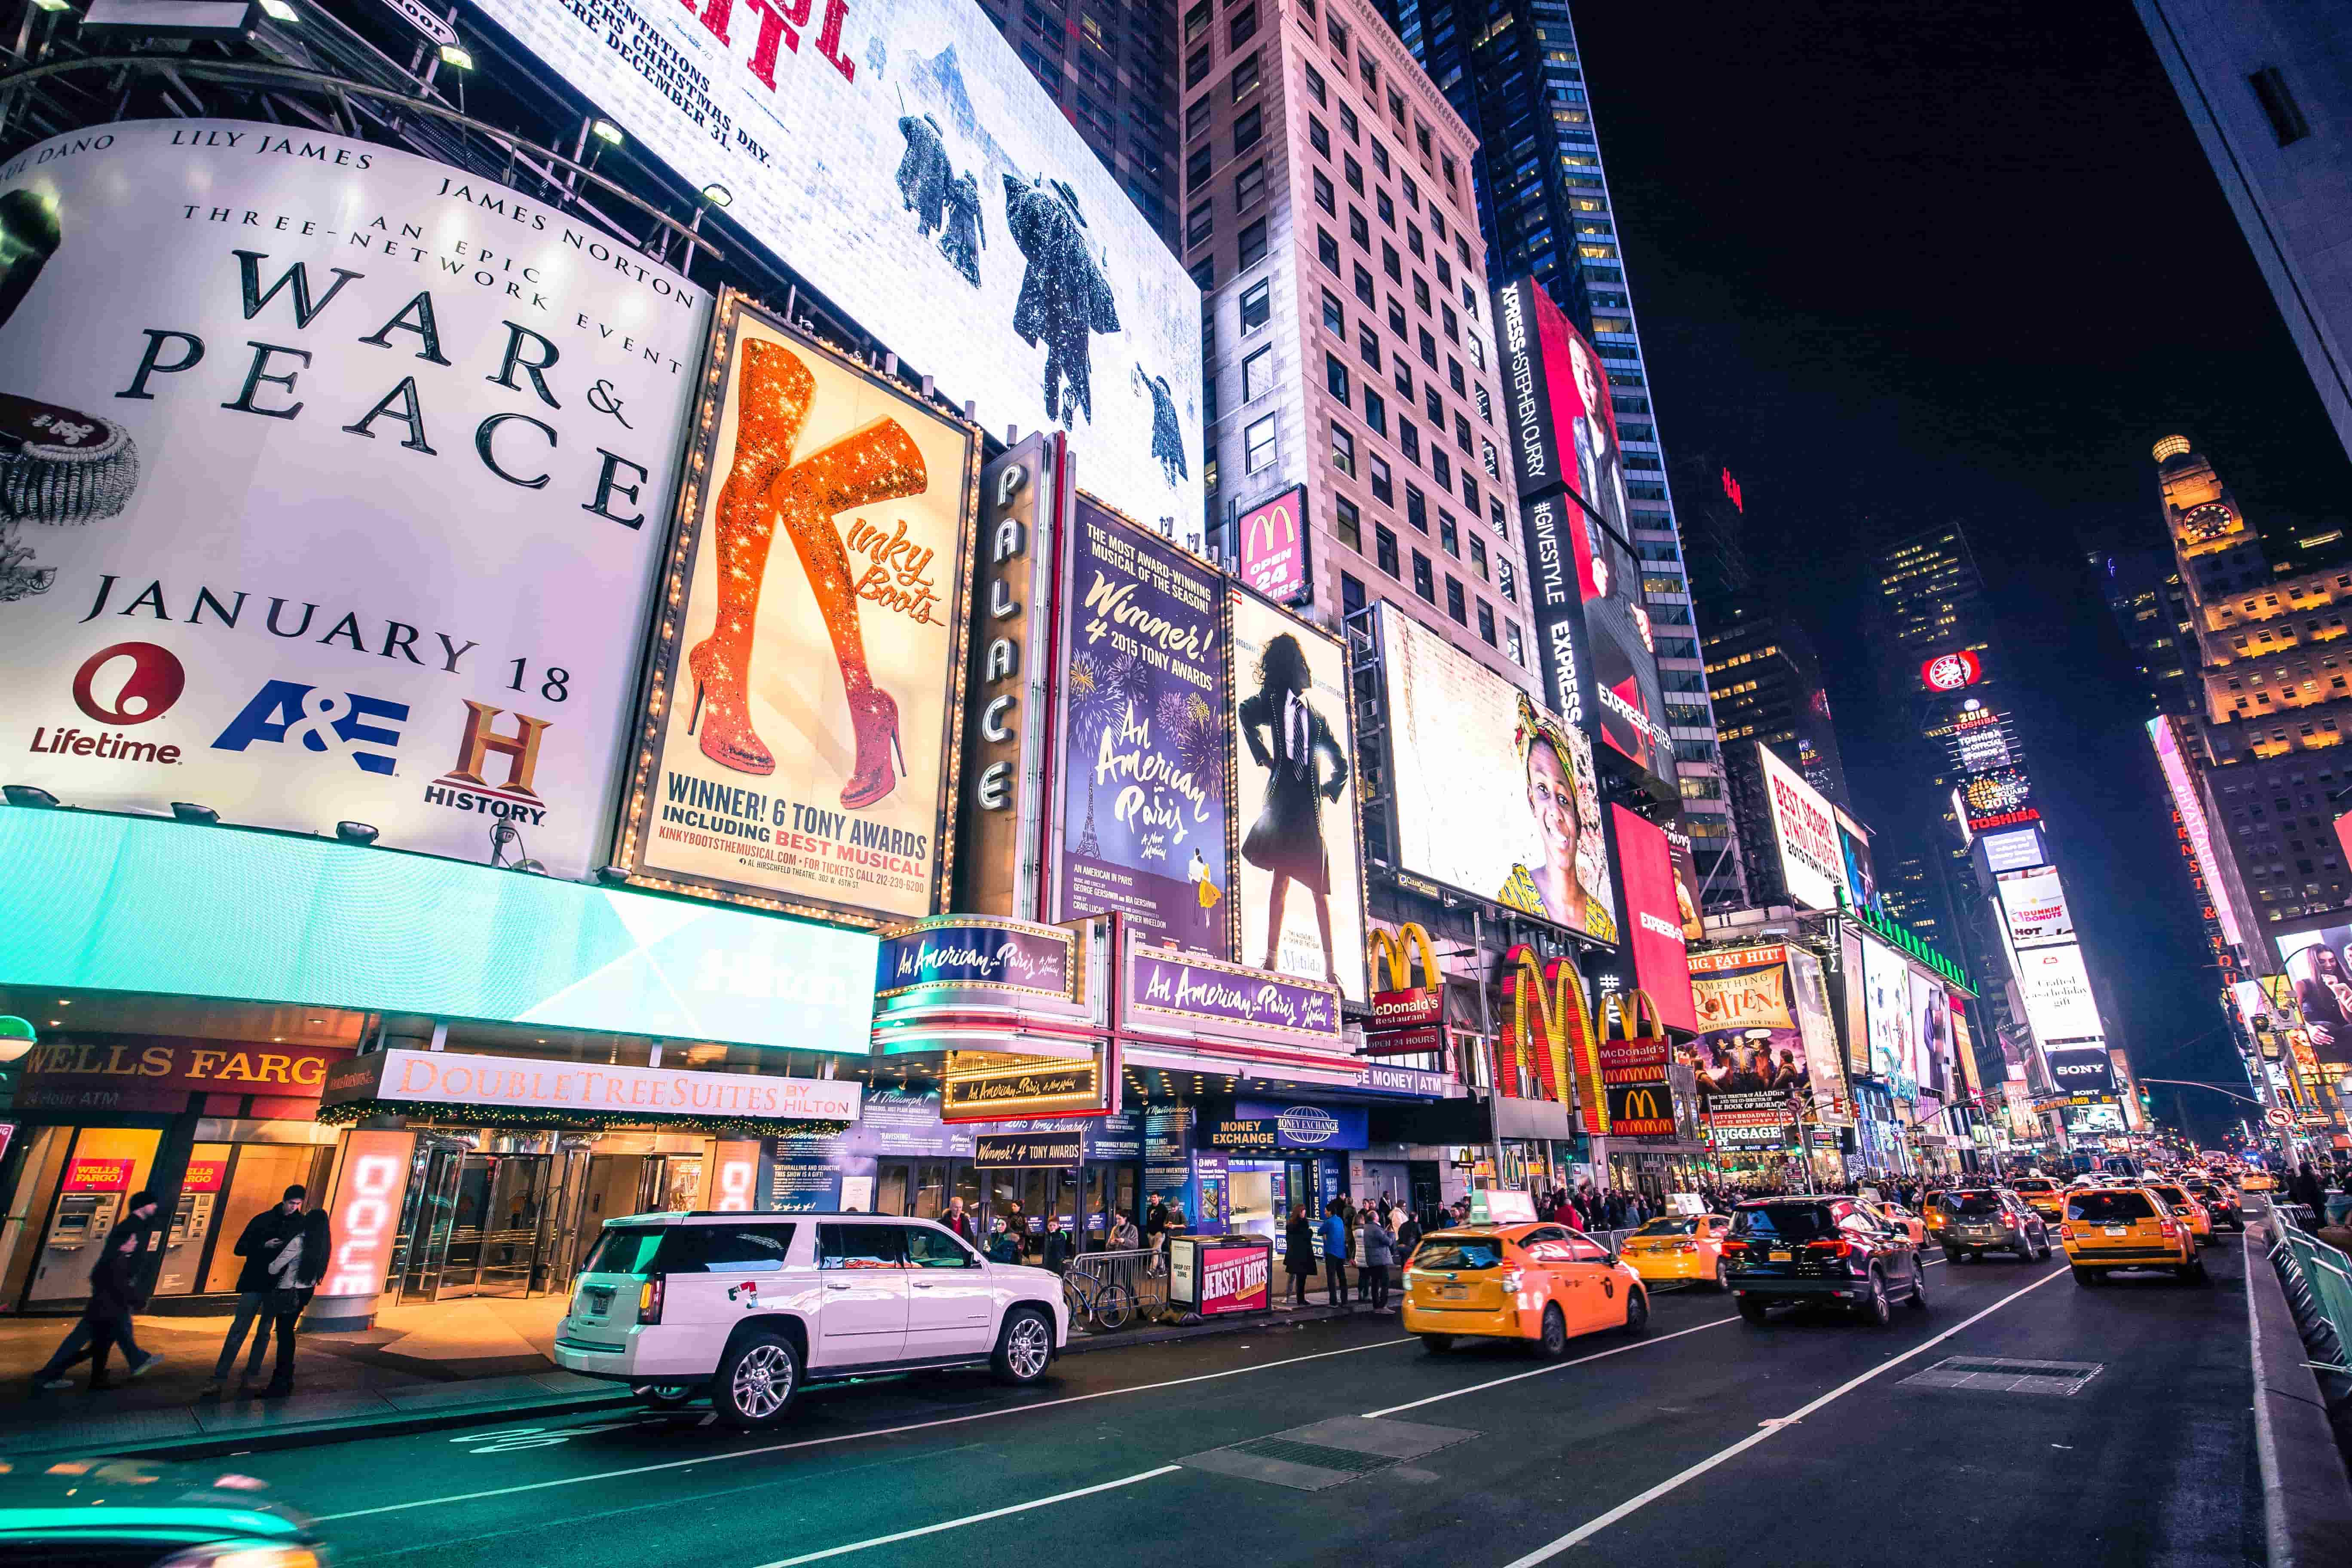 Testing advertising will help startups research the market